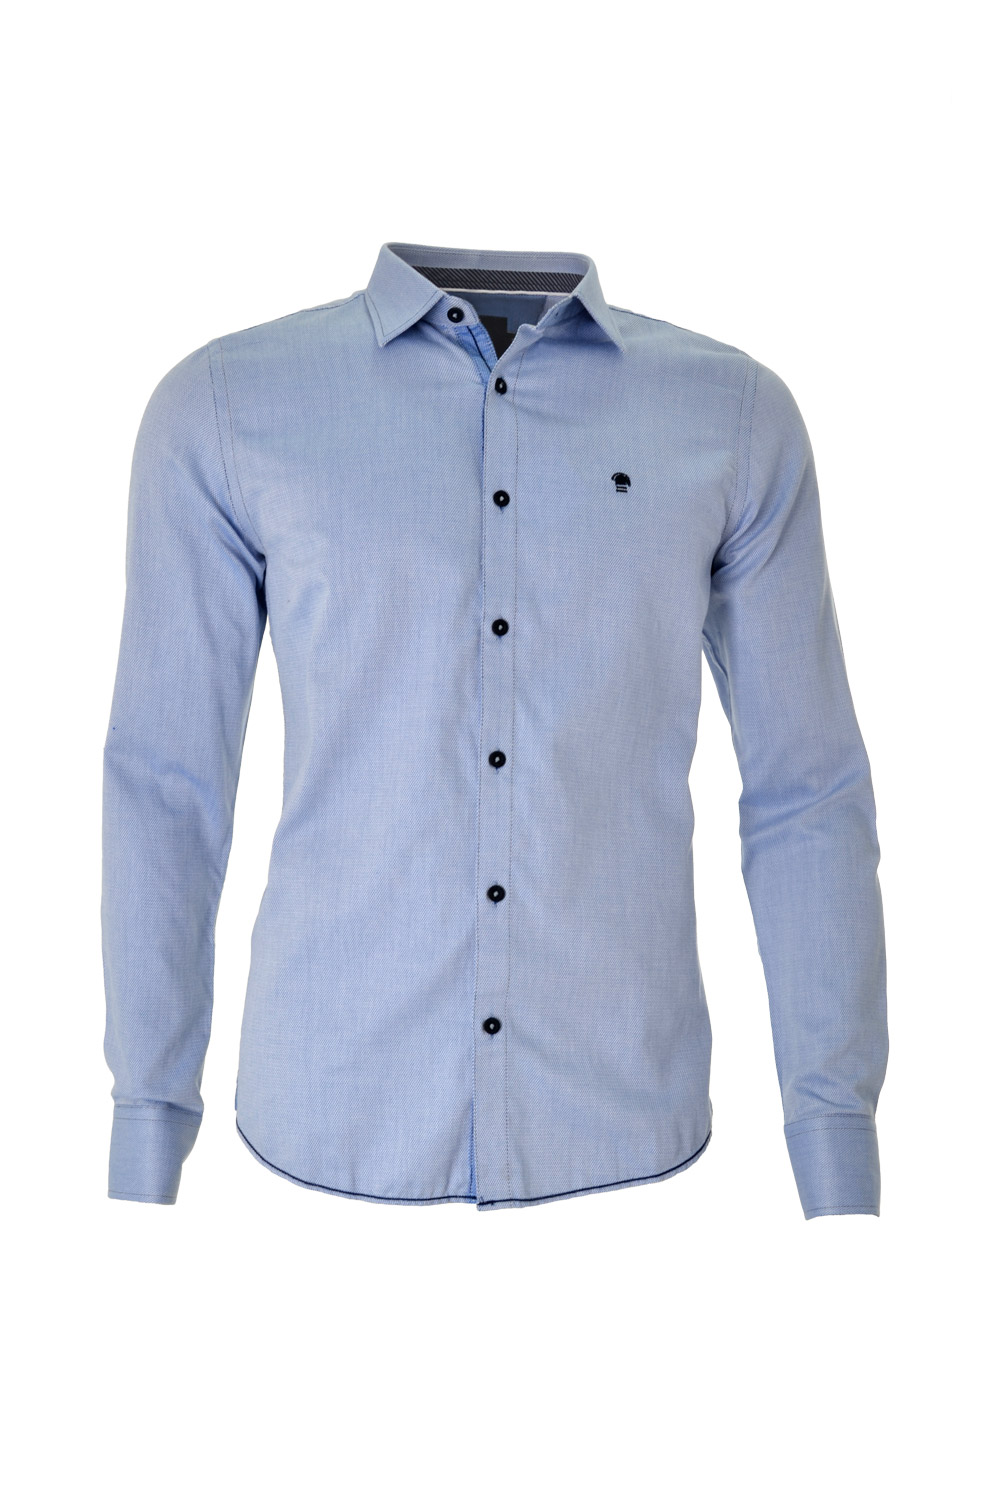 CAMISA ML FASHION SUPER SLIM ALGODAO FIO TINTO JACQUARD AZUL MEDIO